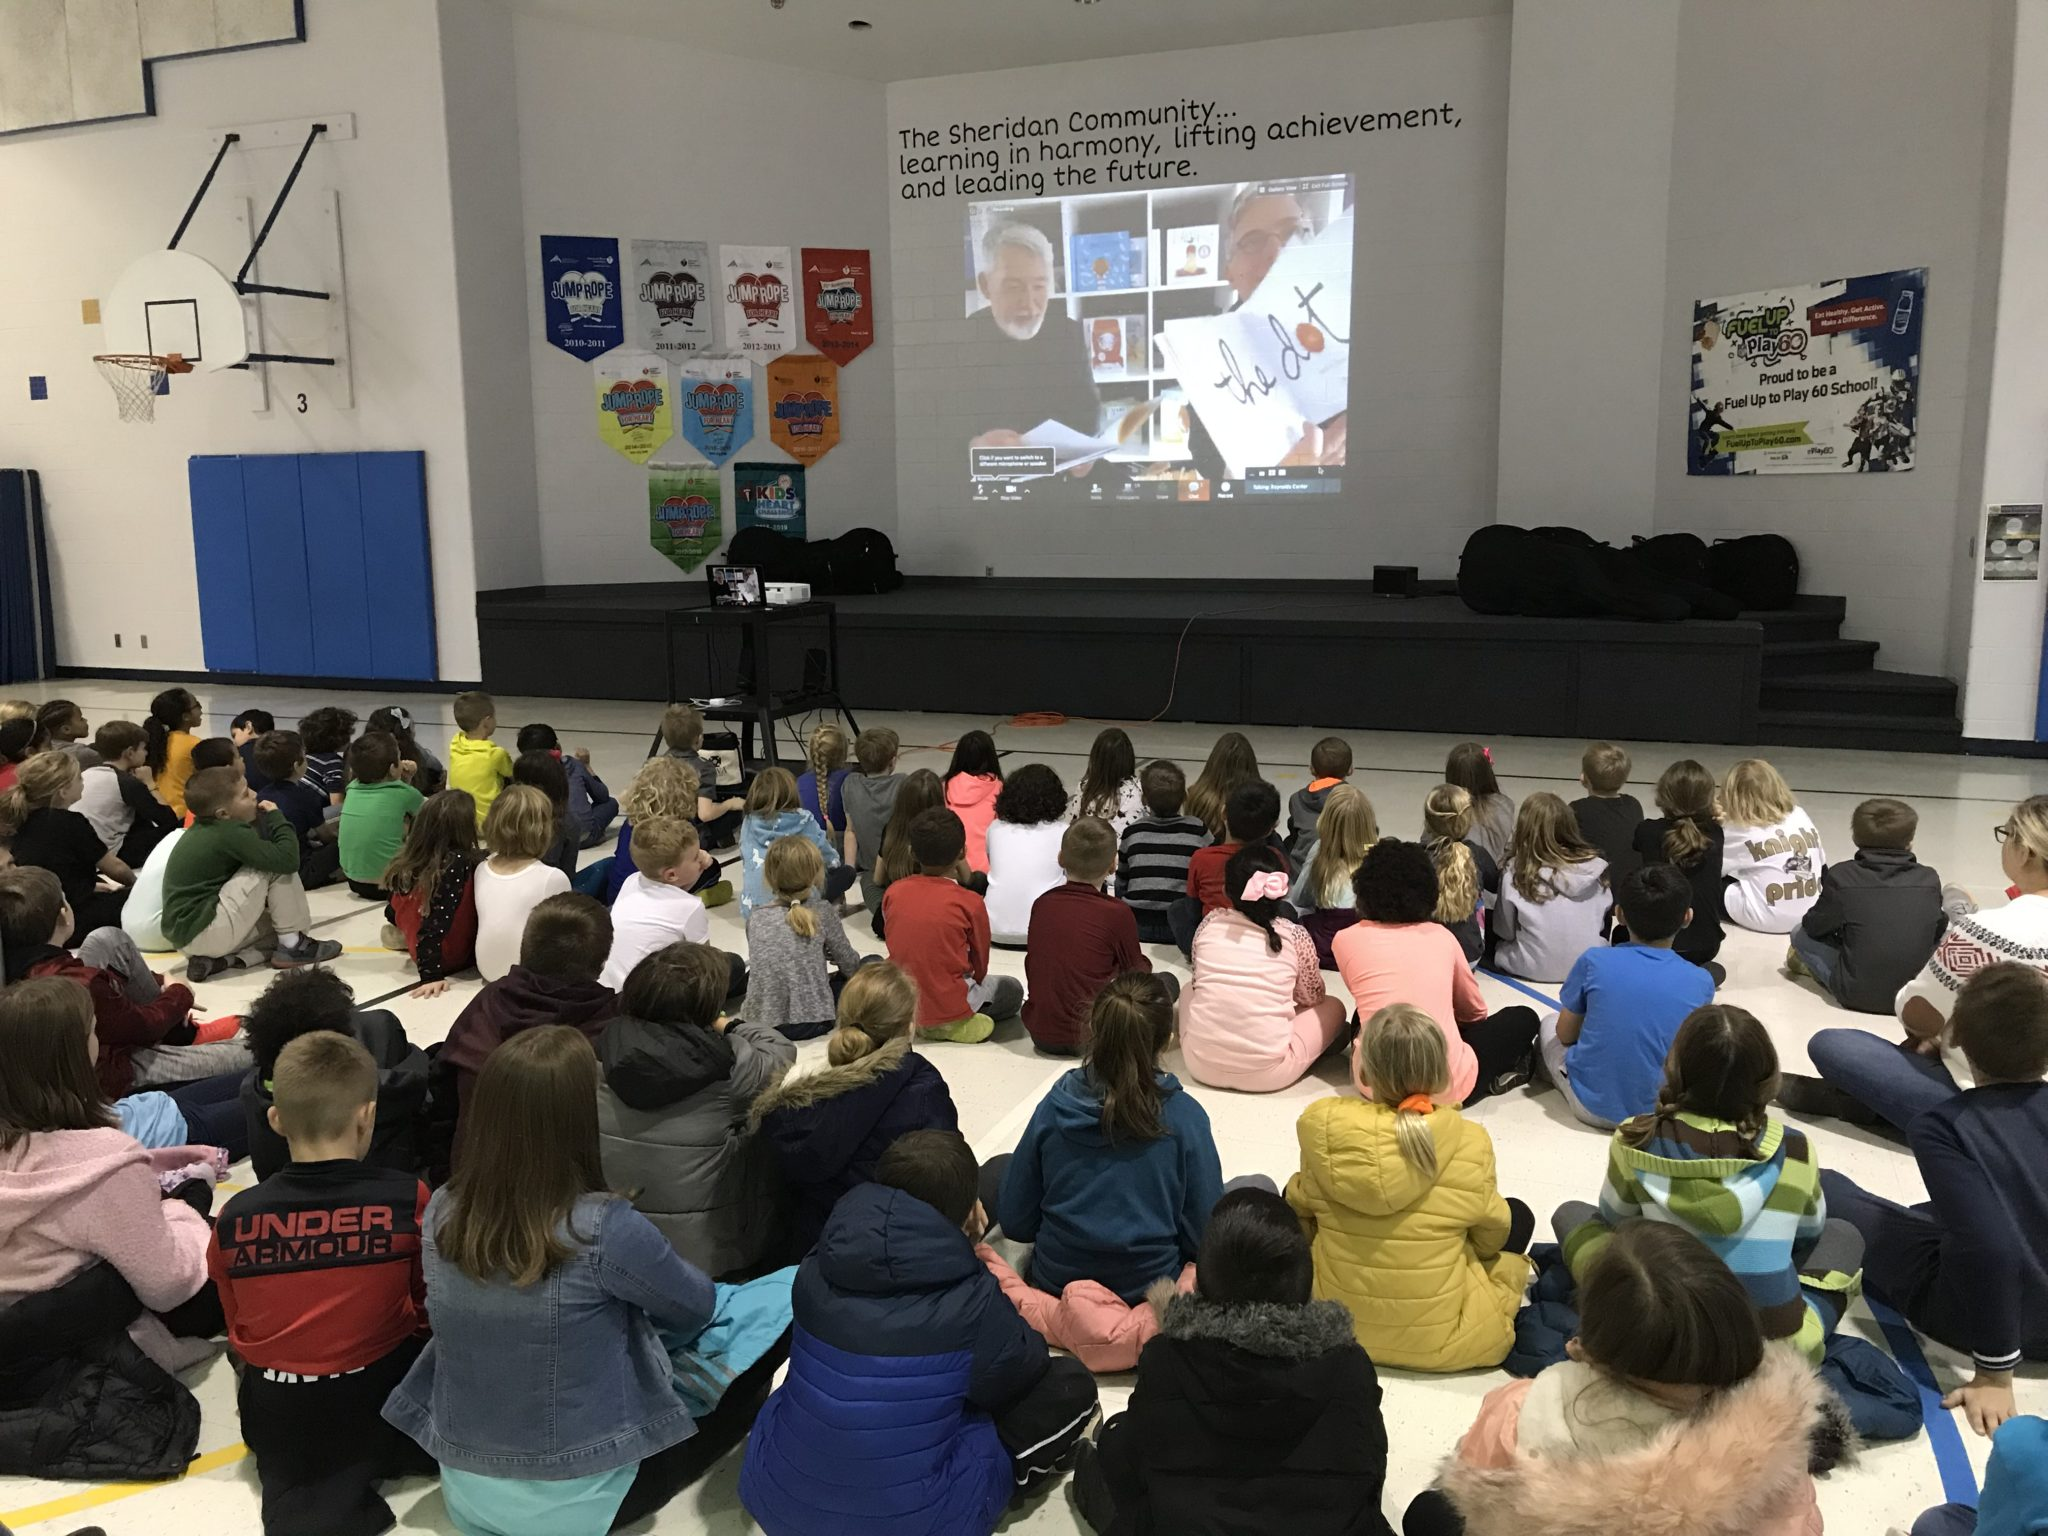 Authors Peter and Paul Reynolds' Visit Inspires Students